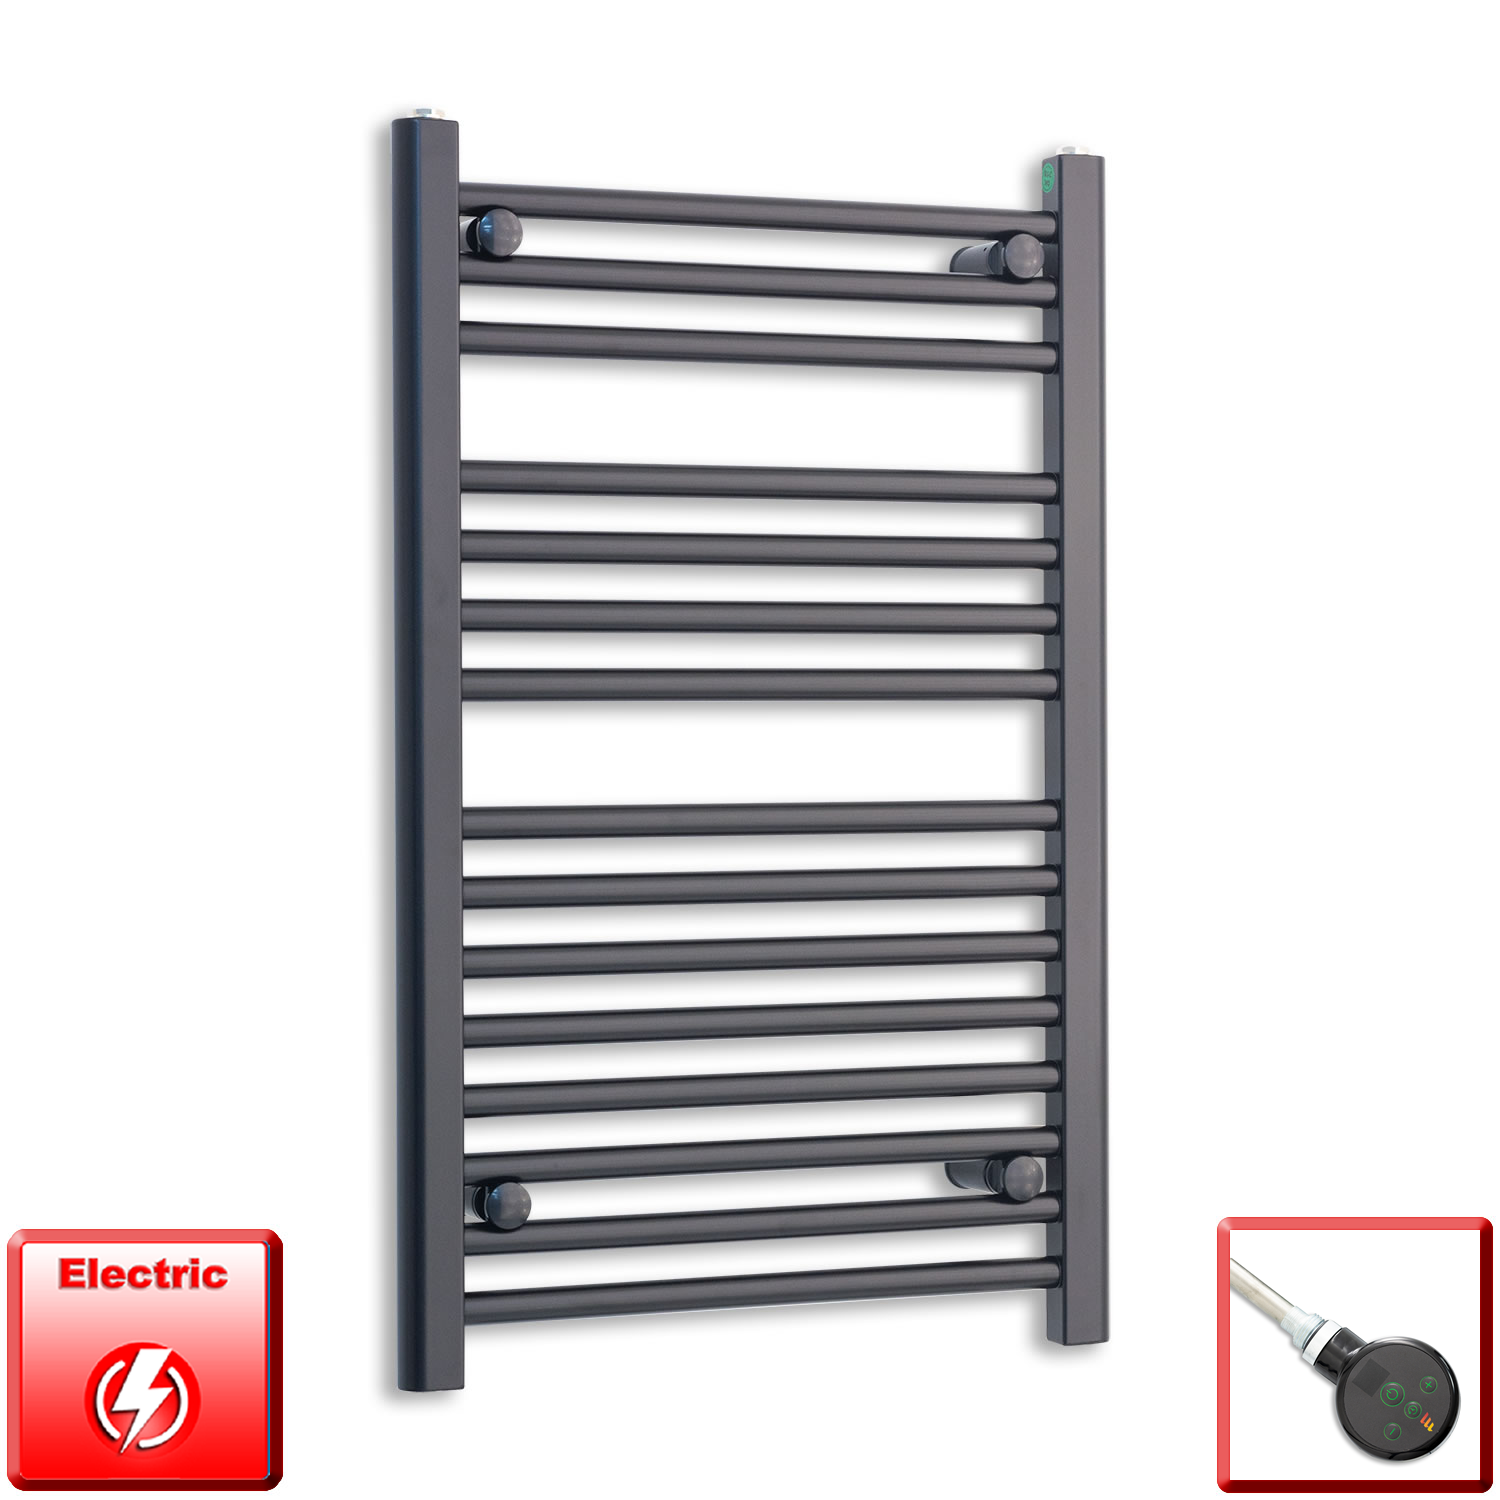 500mm Wide 800mm High Flat Black Pre-Filled Electric Heated Towel Rail Radiator HTR,DIGIThermostatic